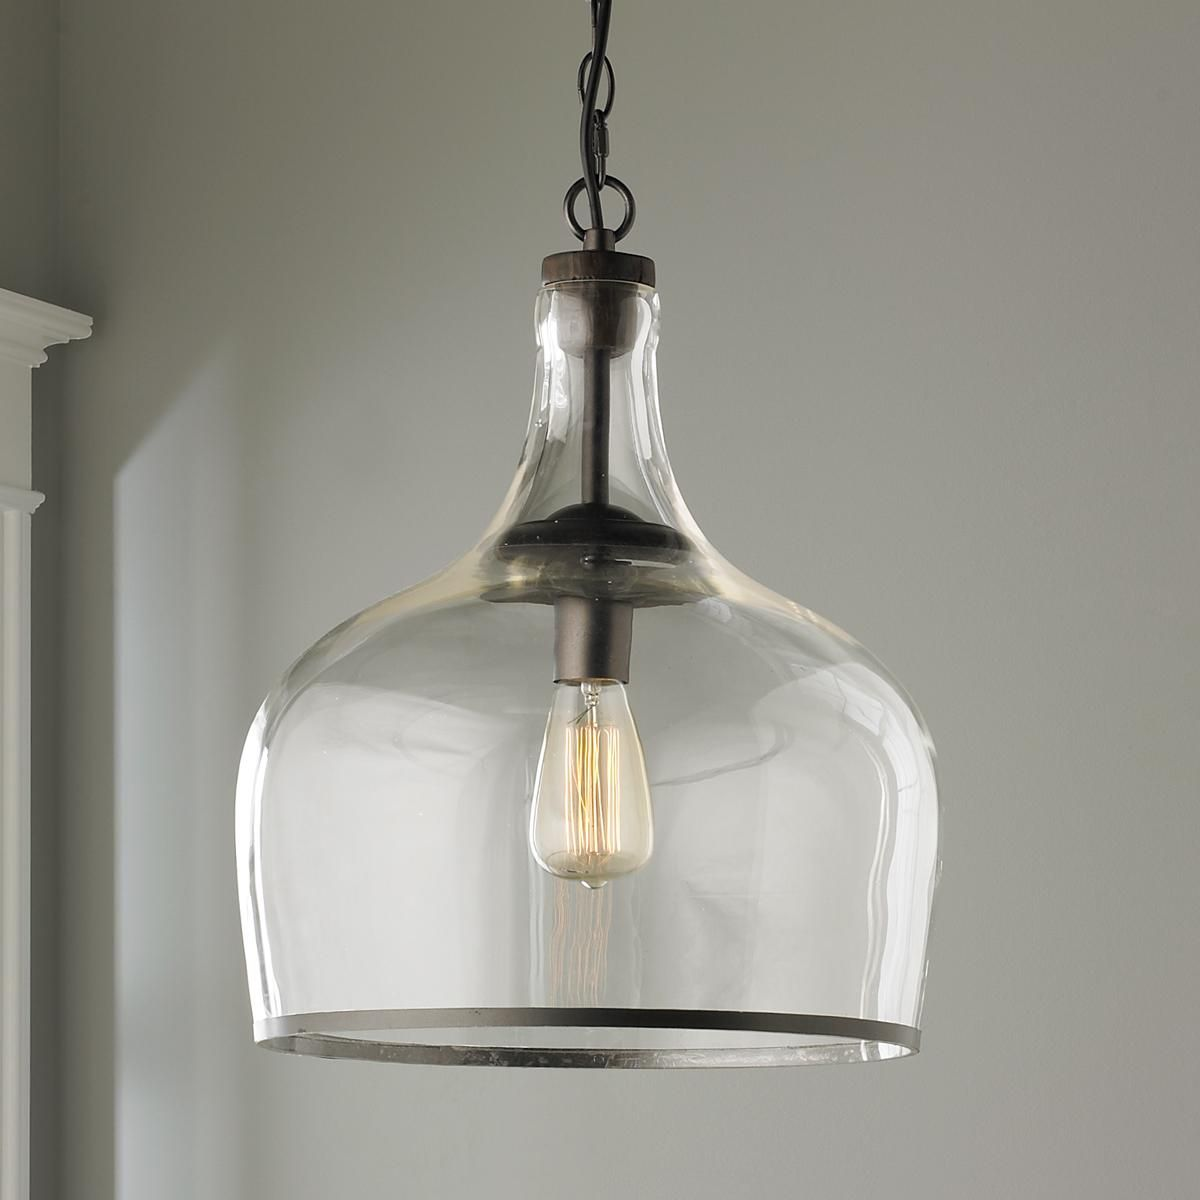 Kitchen Pendant Lighting Glass Shades Reproduction Glass Cloche Pendant In 2019 Clearly Aiming